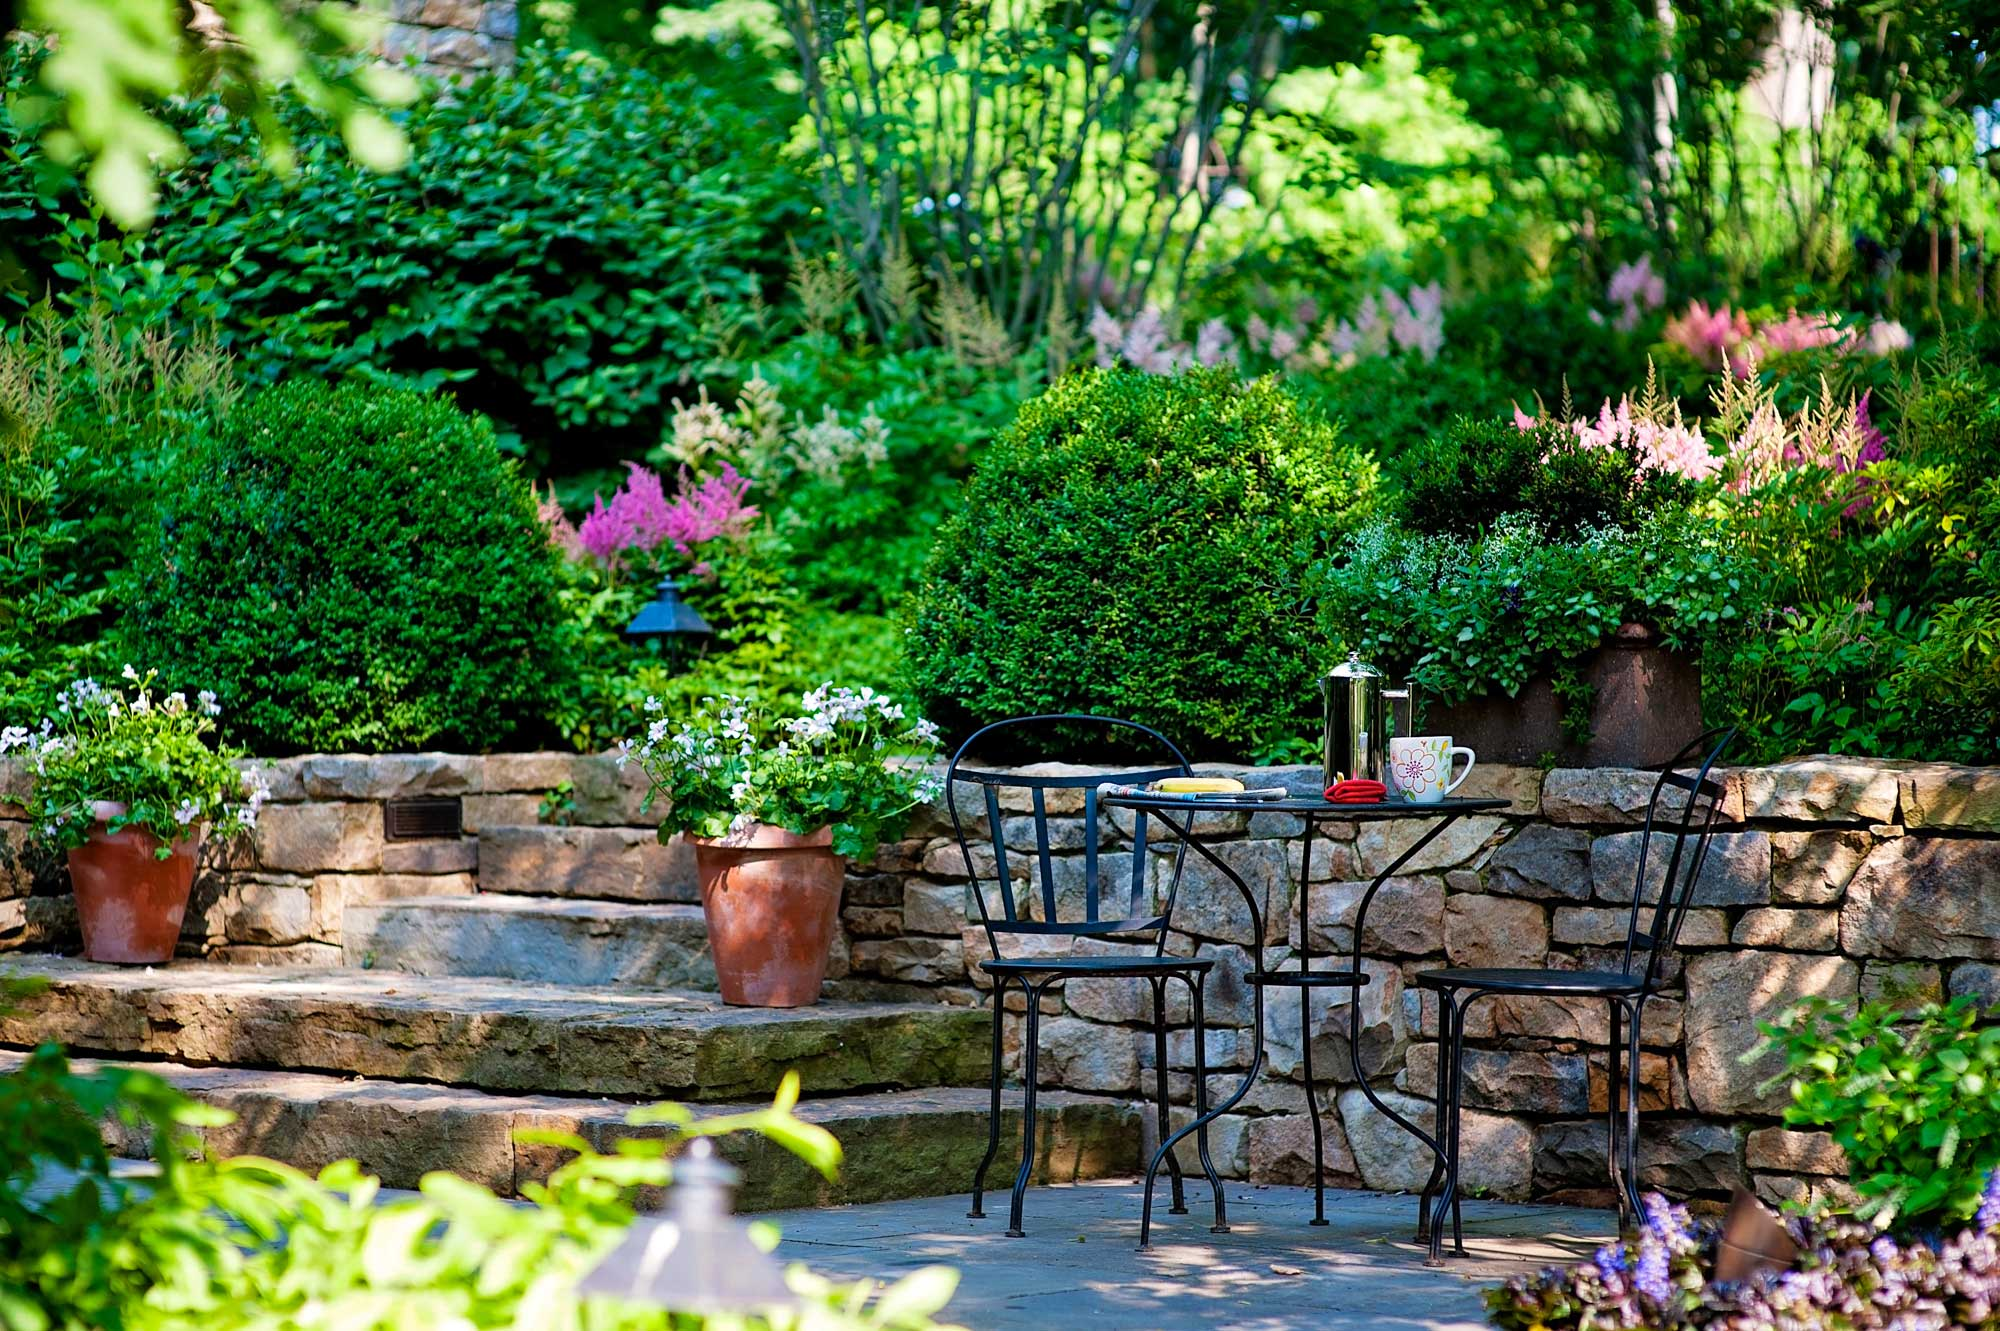 Bryn Mawr, Pennsylvania Landscaping Services